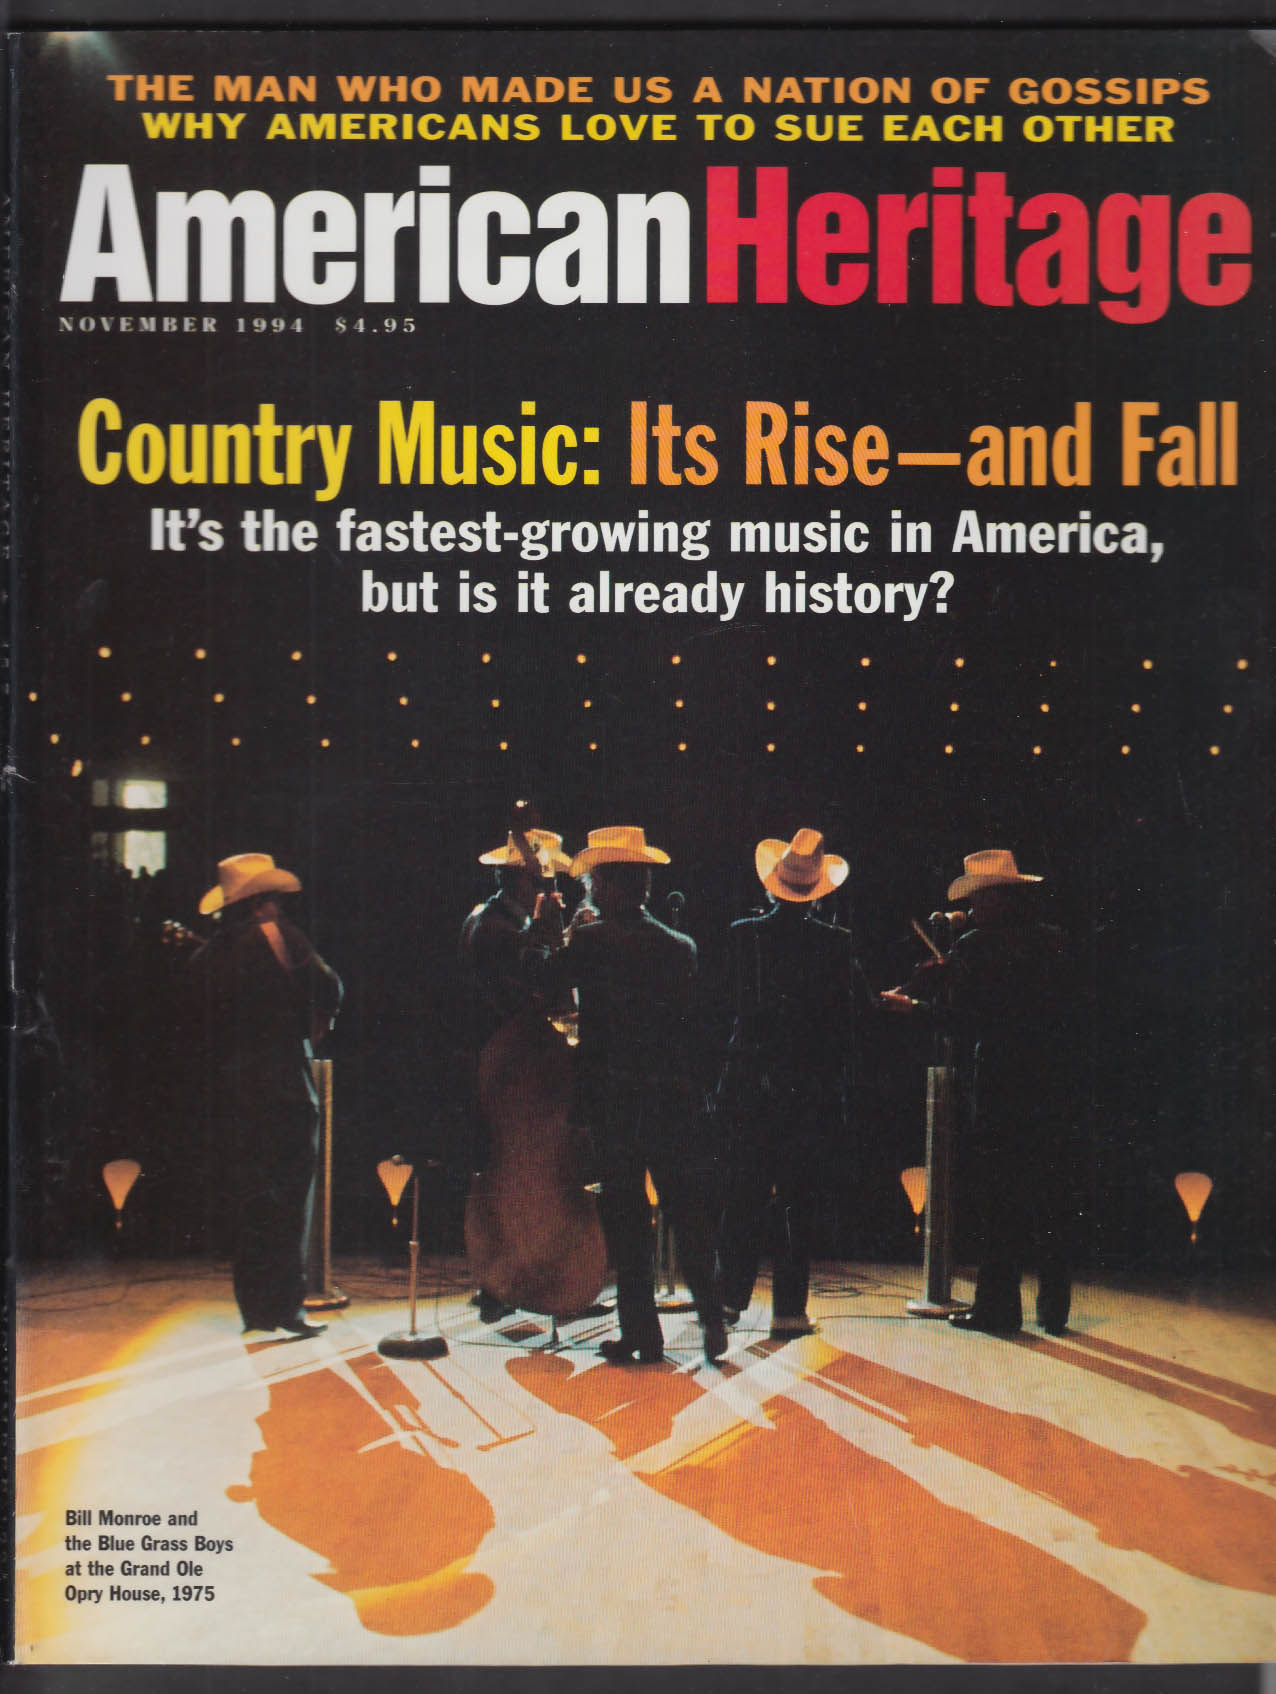 AMERICAN HERITAGE Country Music Walter Winchell Ronald L Numbers + 11 1994